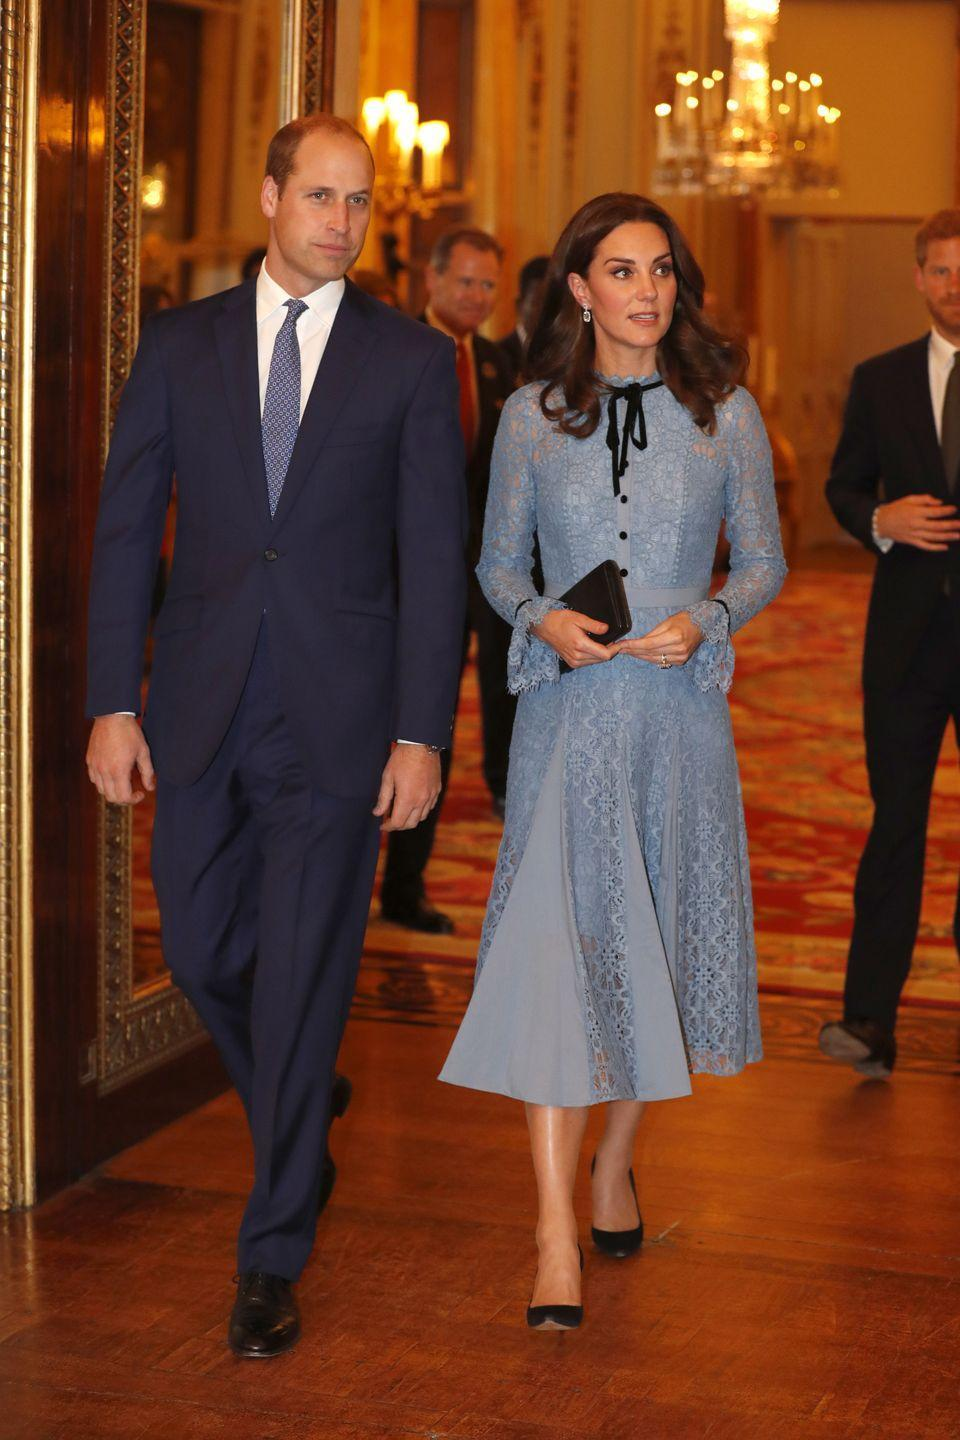 """<p>The Duchess wears a blue lace Temperley London Dress, black pumps, and a clutch at Buckingham Palace for a World Mental Health Day celebration. This marked her <a href=""""https://www.harpersbazaar.com/celebrity/latest/a12816892/kate-middleton-first-appearance-third-pregnancy/"""" rel=""""nofollow noopener"""" target=""""_blank"""" data-ylk=""""slk:first public appearance"""" class=""""link rapid-noclick-resp"""">first public appearance</a> since announcing her third pregnancy.</p>"""